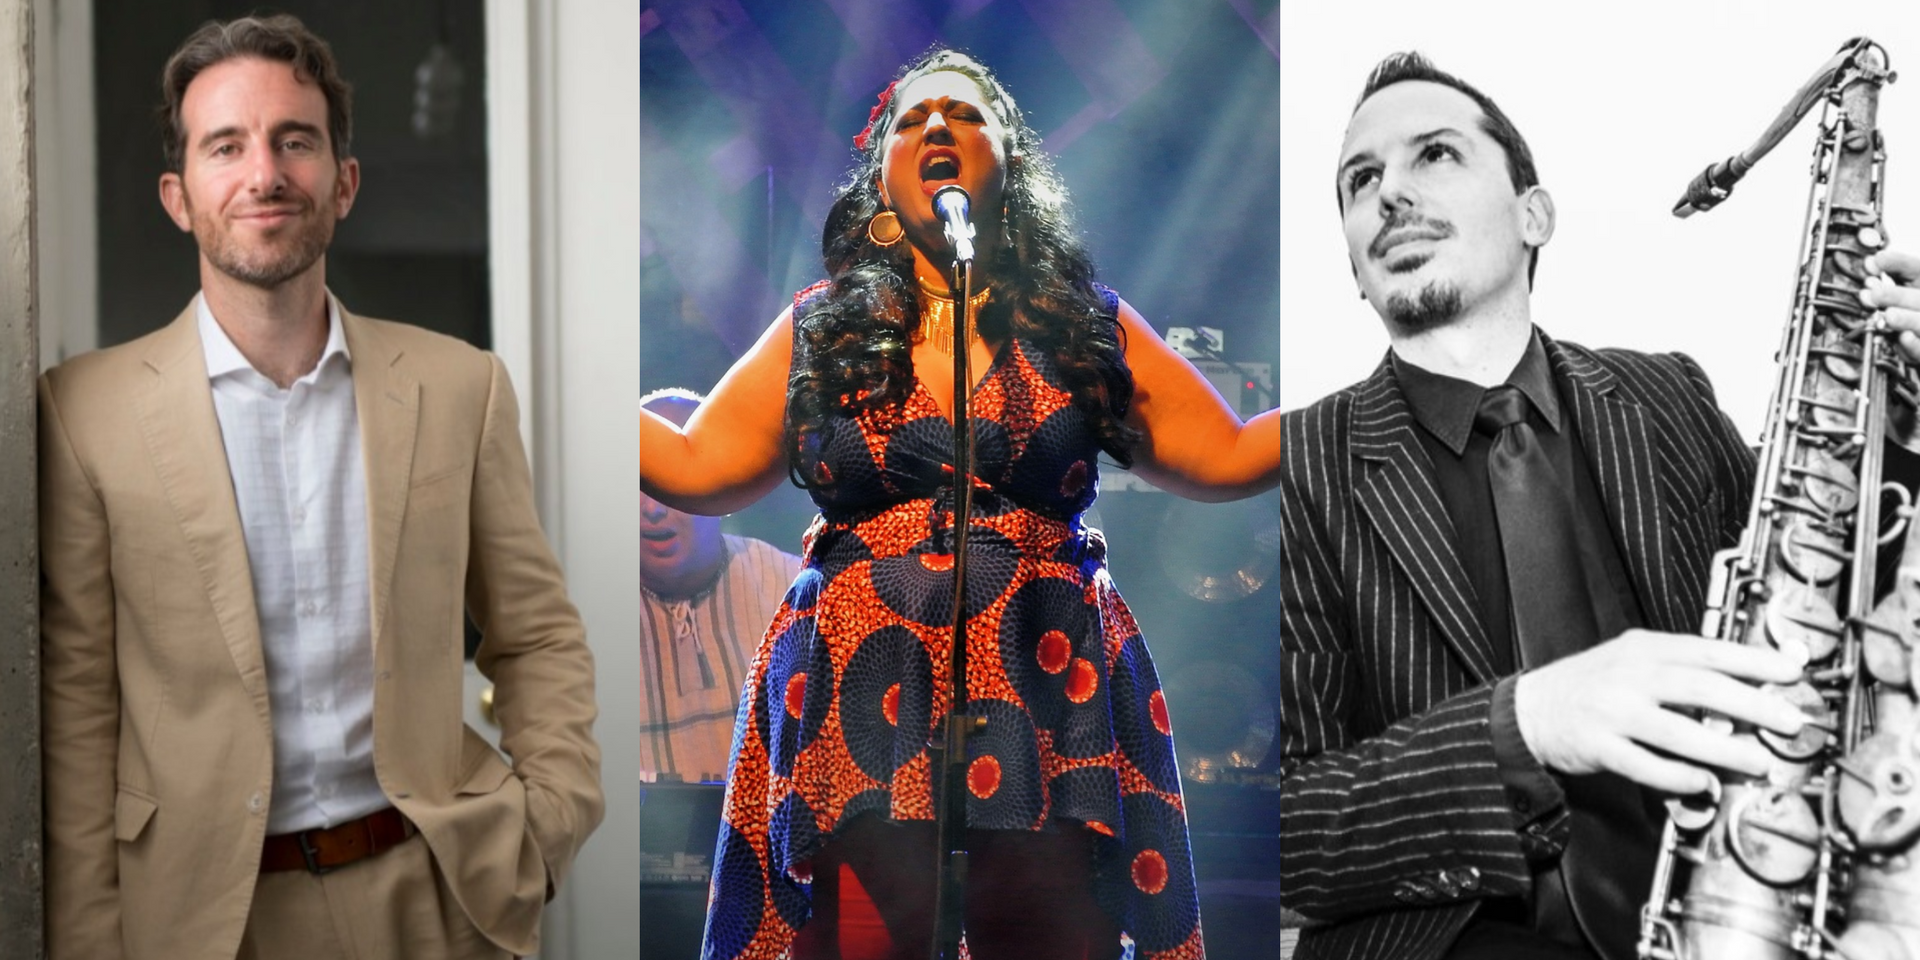 Jazz At The Red Dot 2019 announces complete list of performers, workshops and more